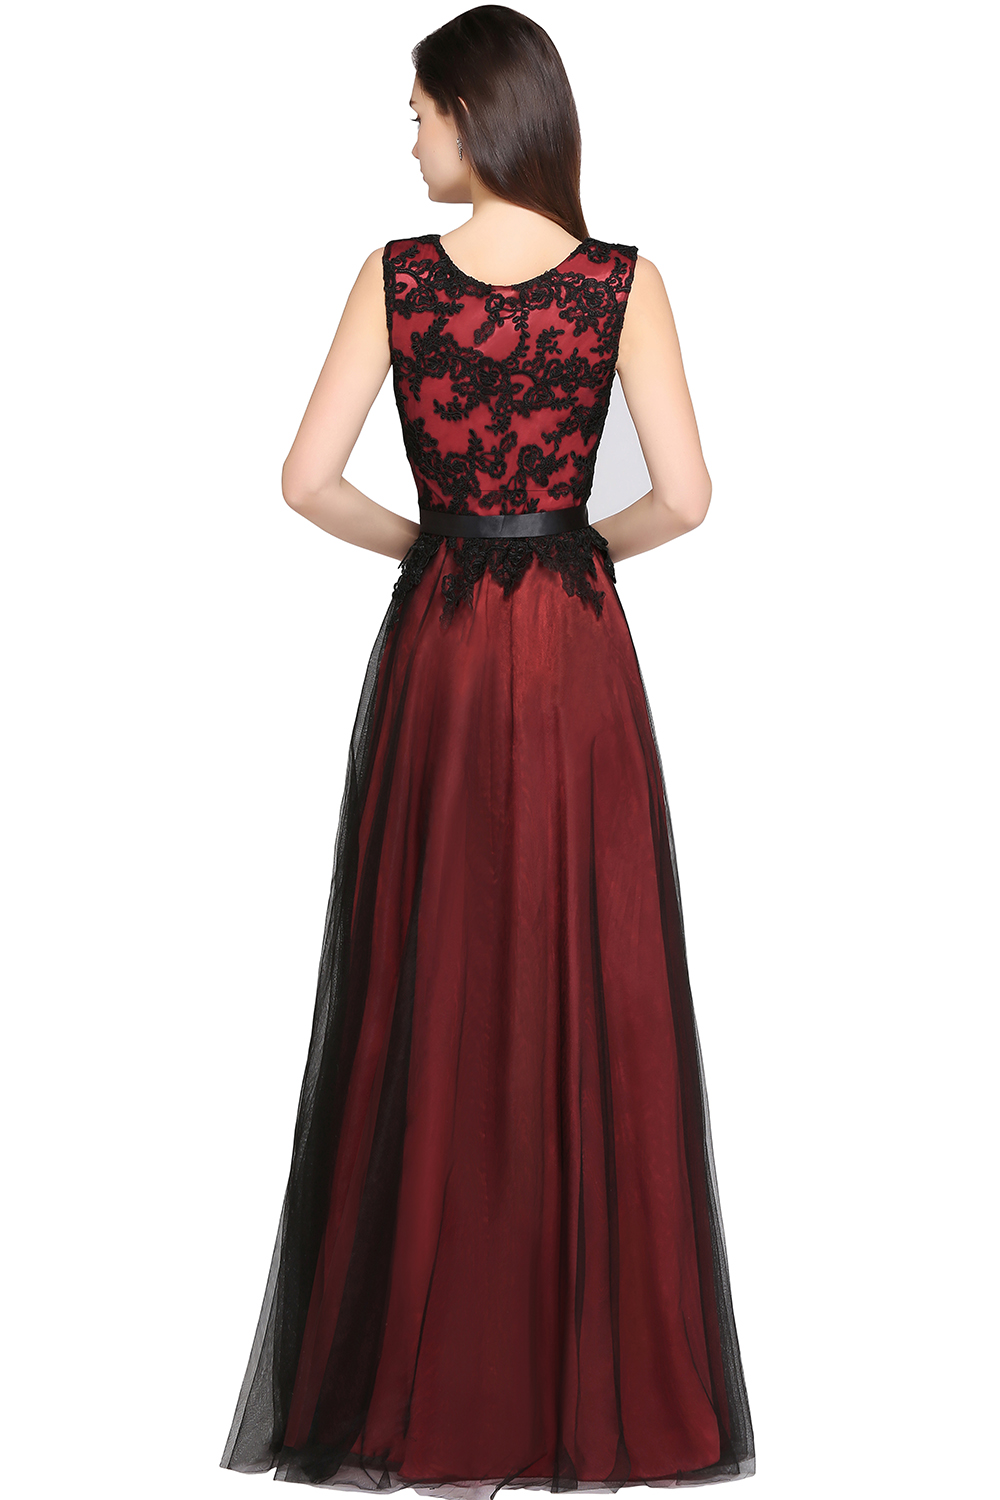 Купить с кэшбэком Vestido de Festa Longo Real Photo Lace Appliques Long Evening Dresses Cheap Evening Party Dresses Robe De Soiree Longue